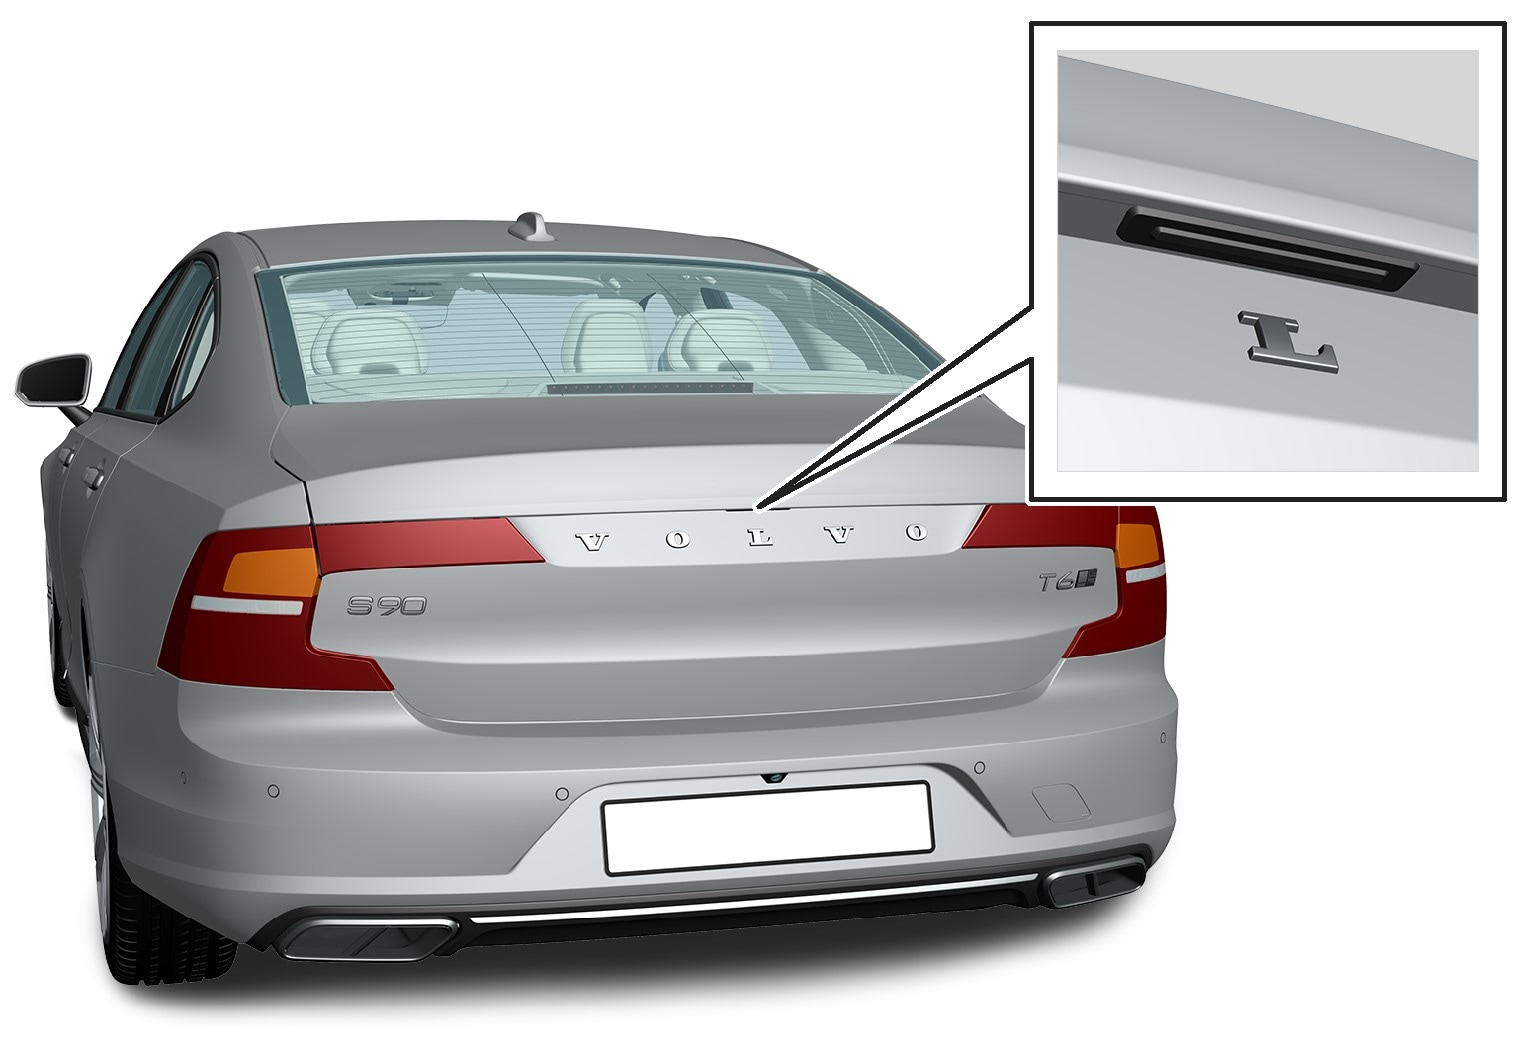 16w17 - SPA - S90 - Tailgate pointing out handle